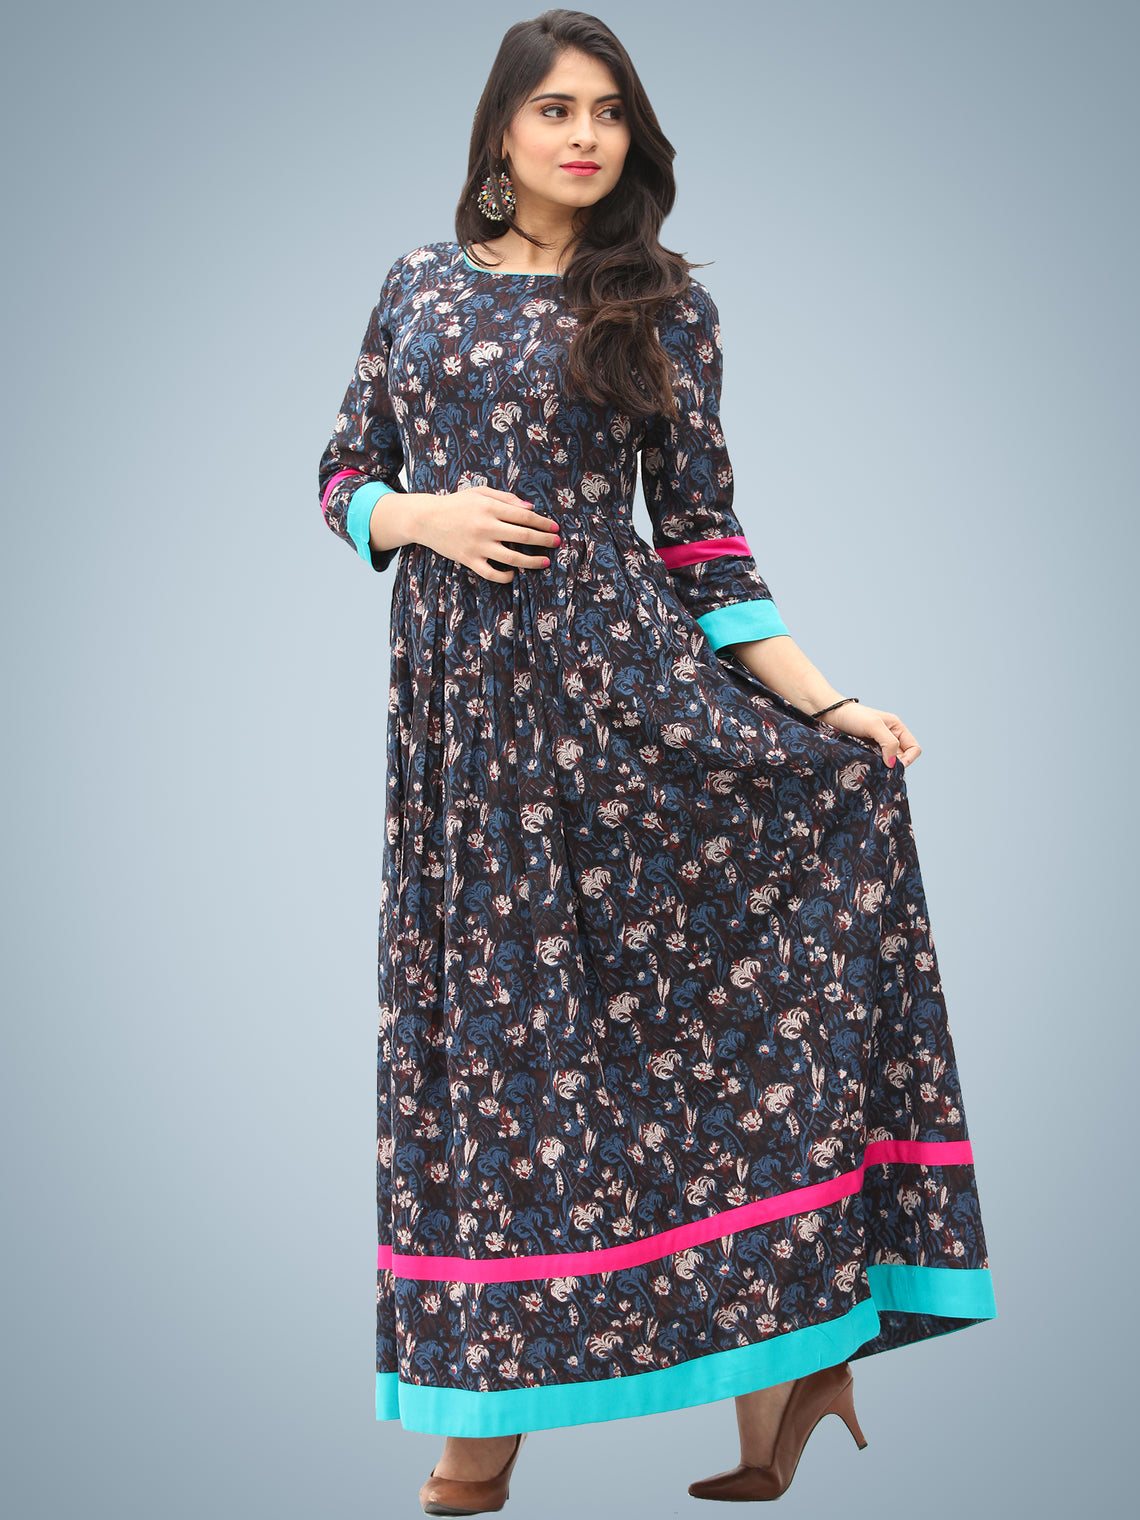 Nadya - Hand Block Printed Cotton Long Dress With Back Detailing - D136F1395